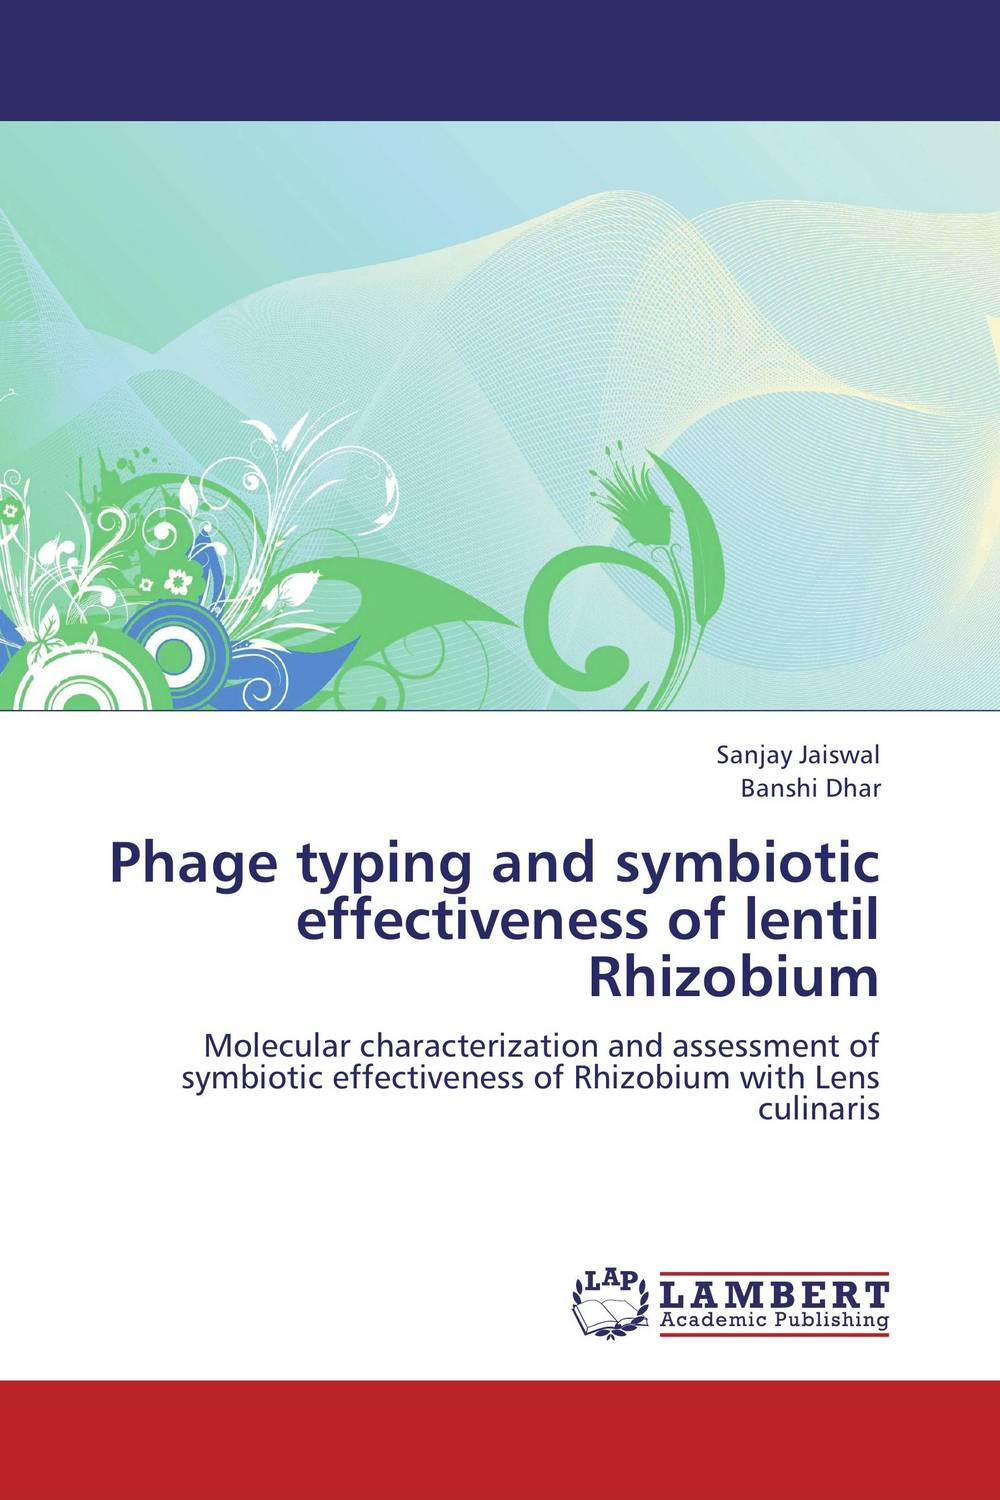 Phage typing and symbiotic effectiveness of lentil Rhizobium